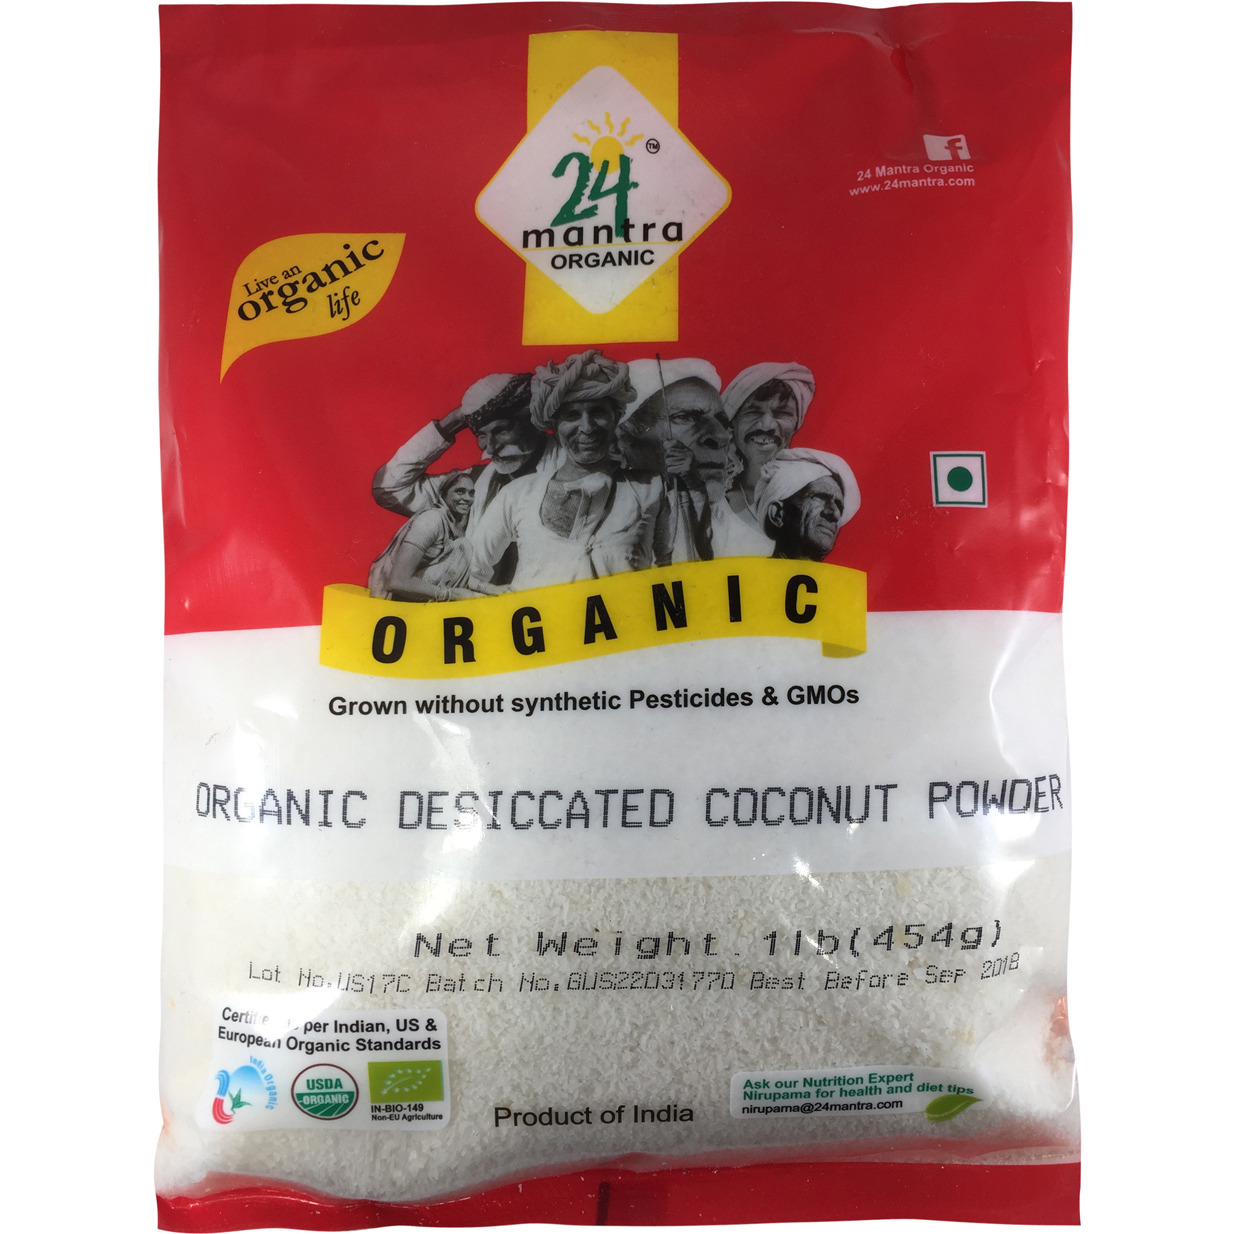 24 mantra Organic Coconut Powder 1 lb